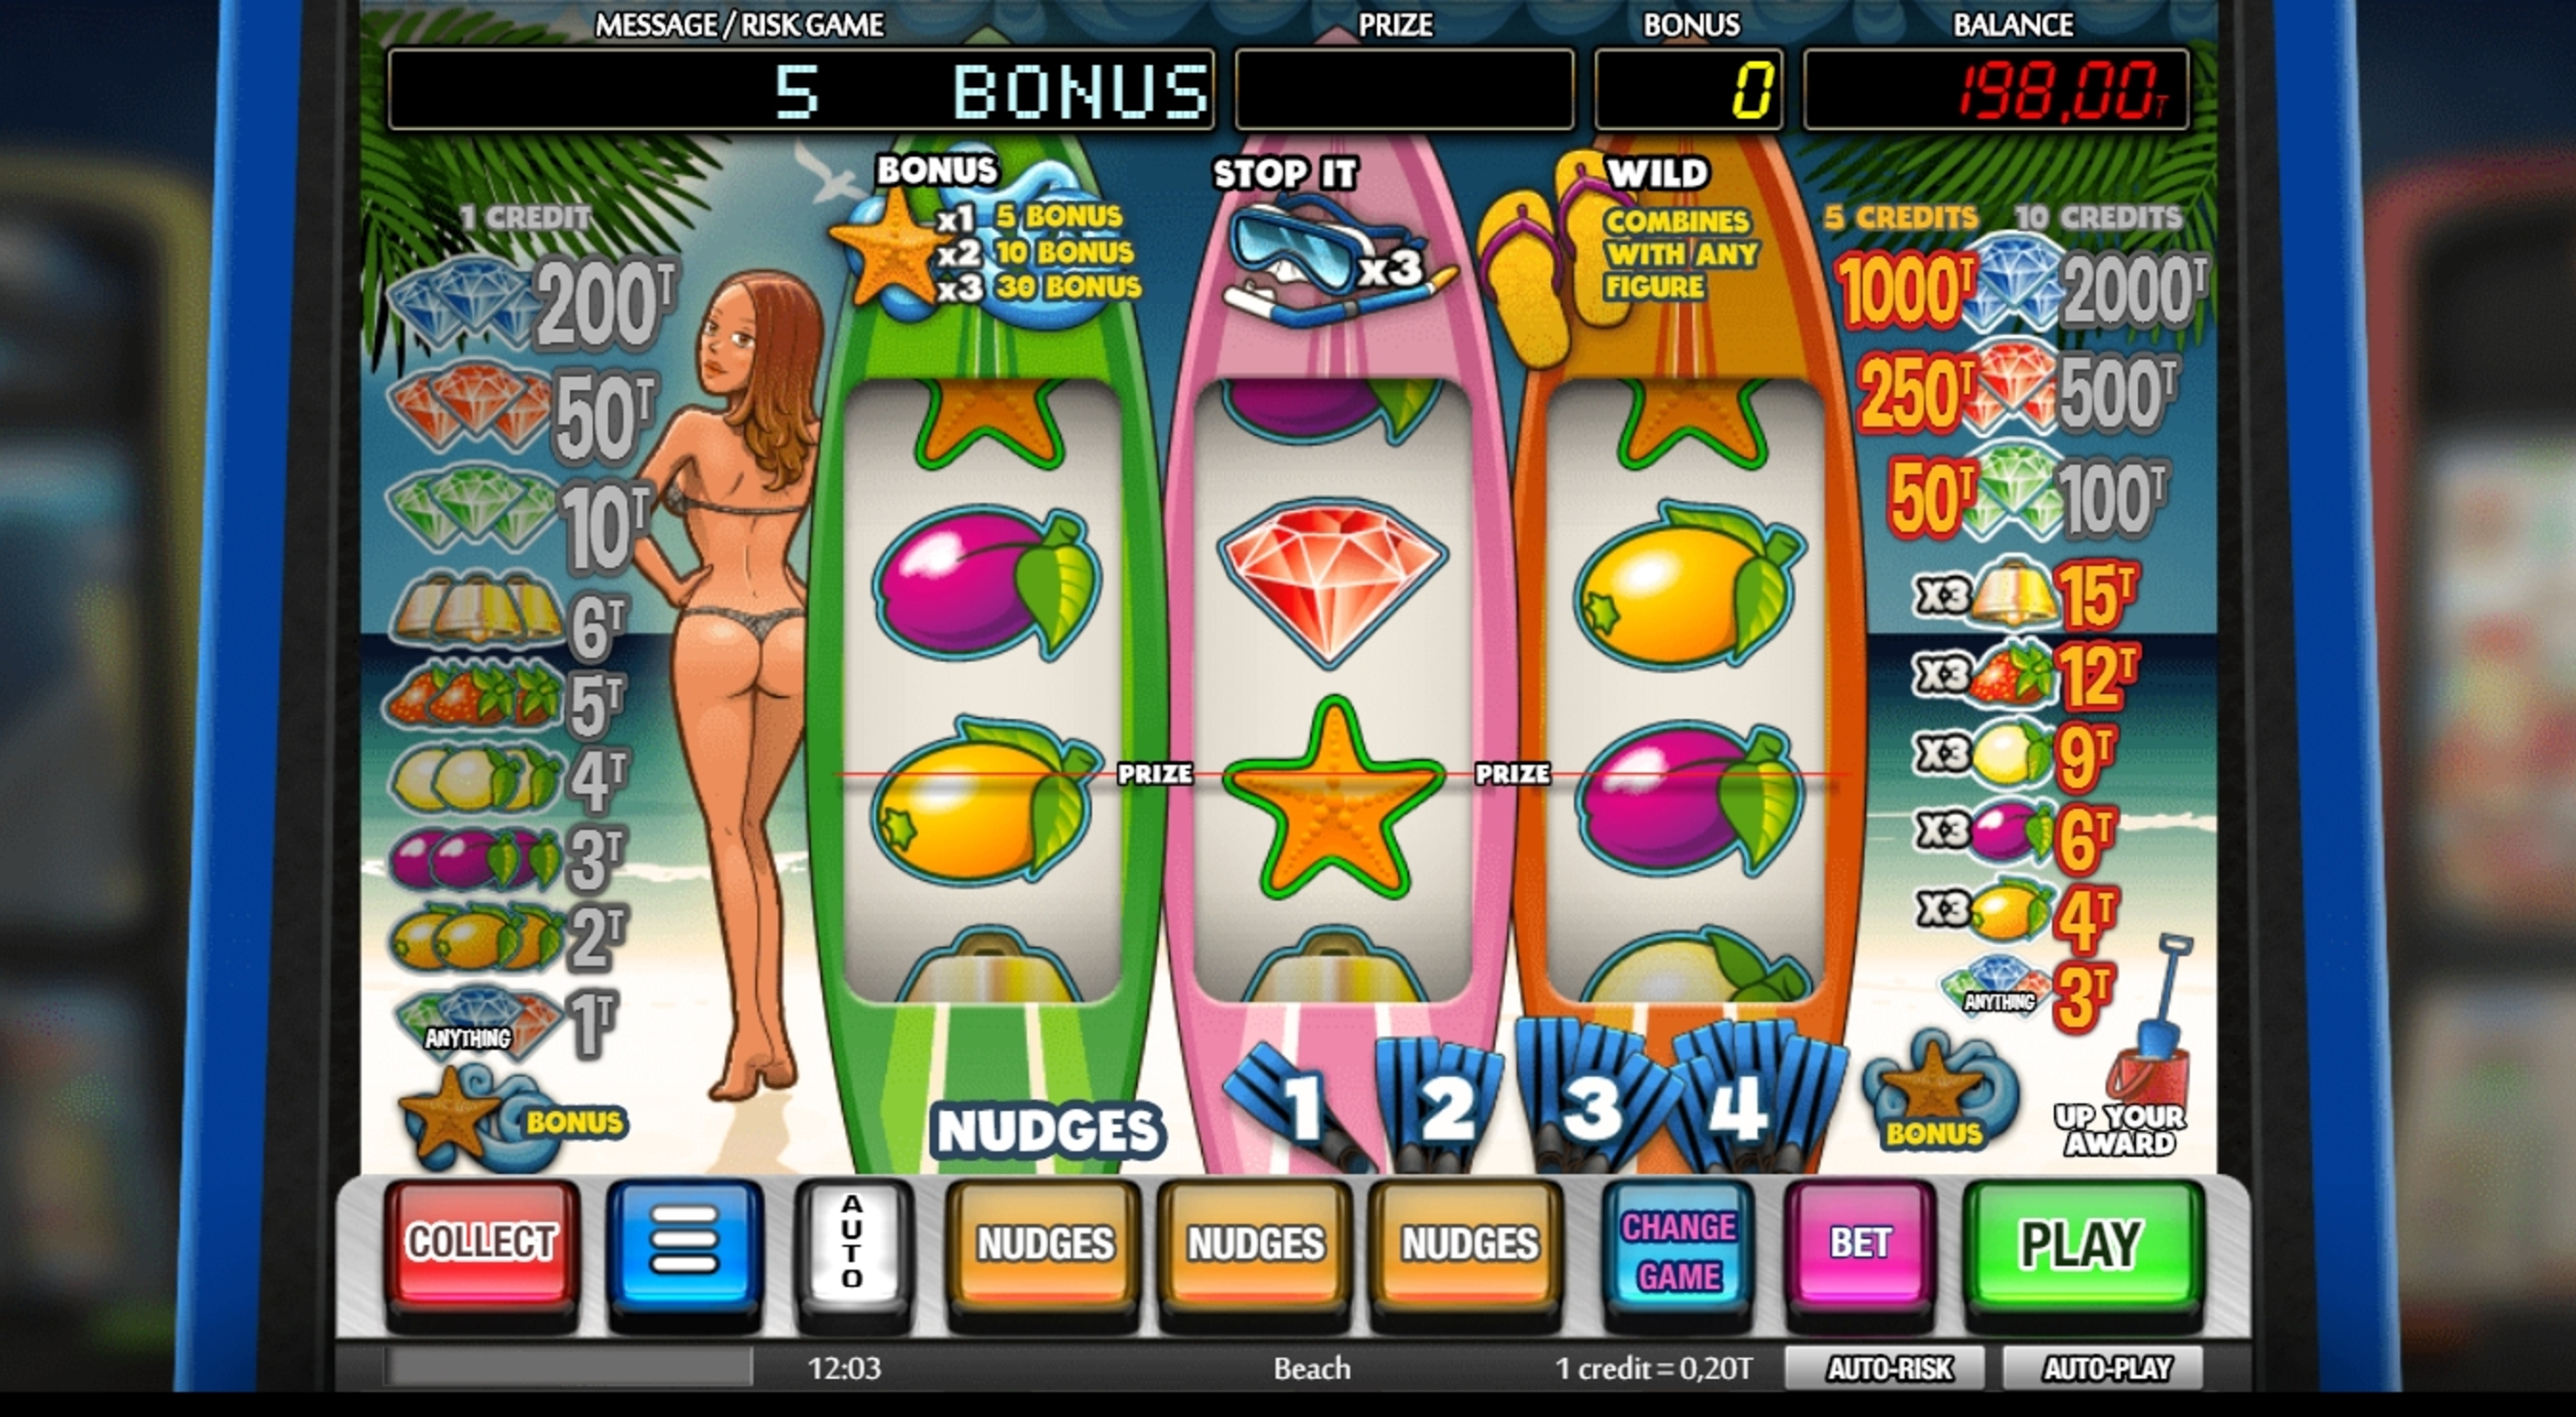 Win Money in Beach Free Slot Game by NetEnt